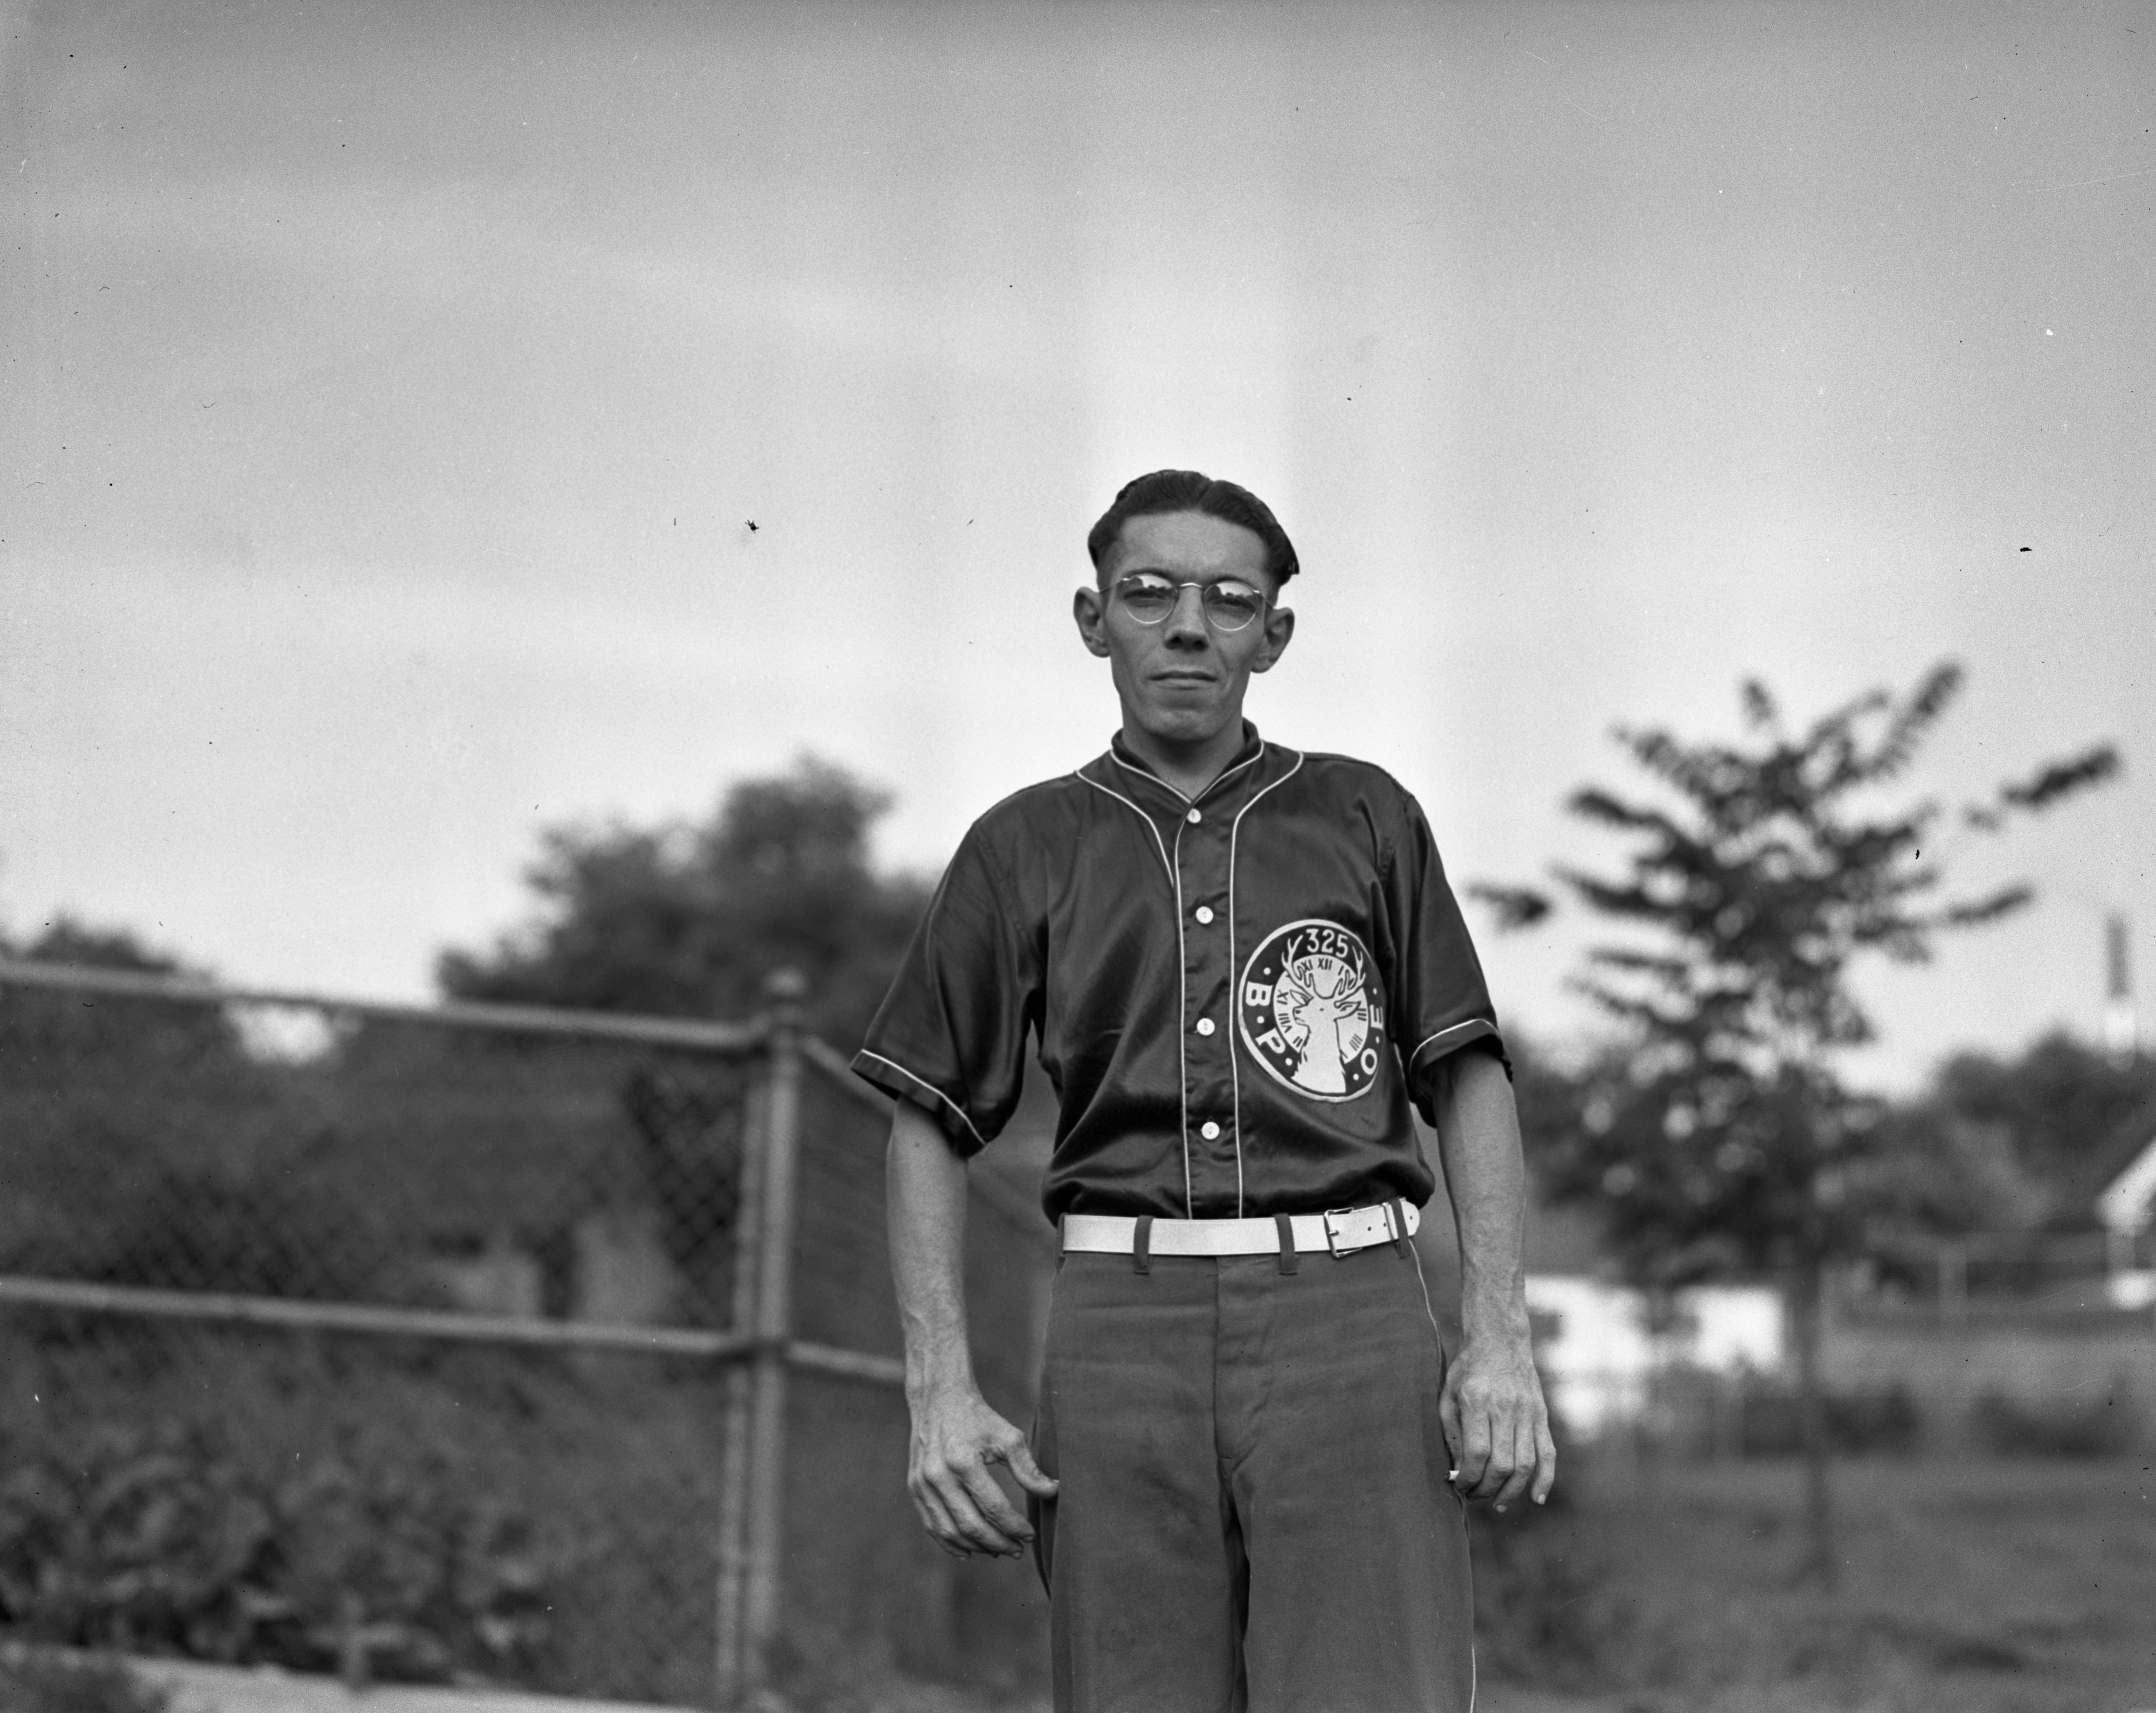 Softball City All-Stars, 1937 image